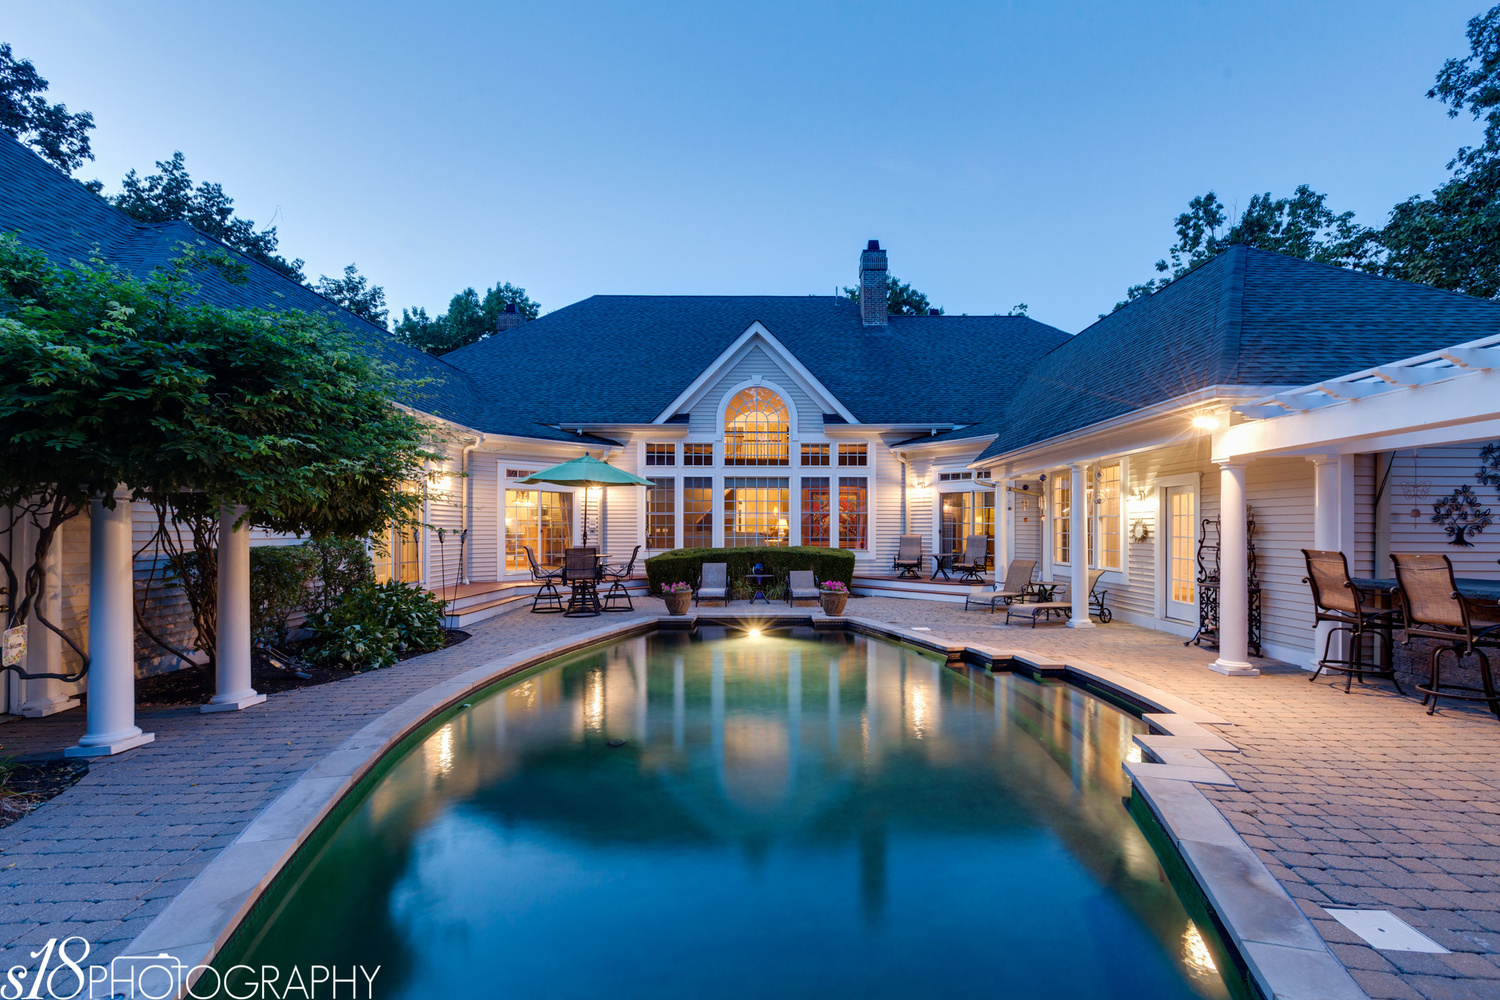 Twilight Exterior Pool by Fred Glasser